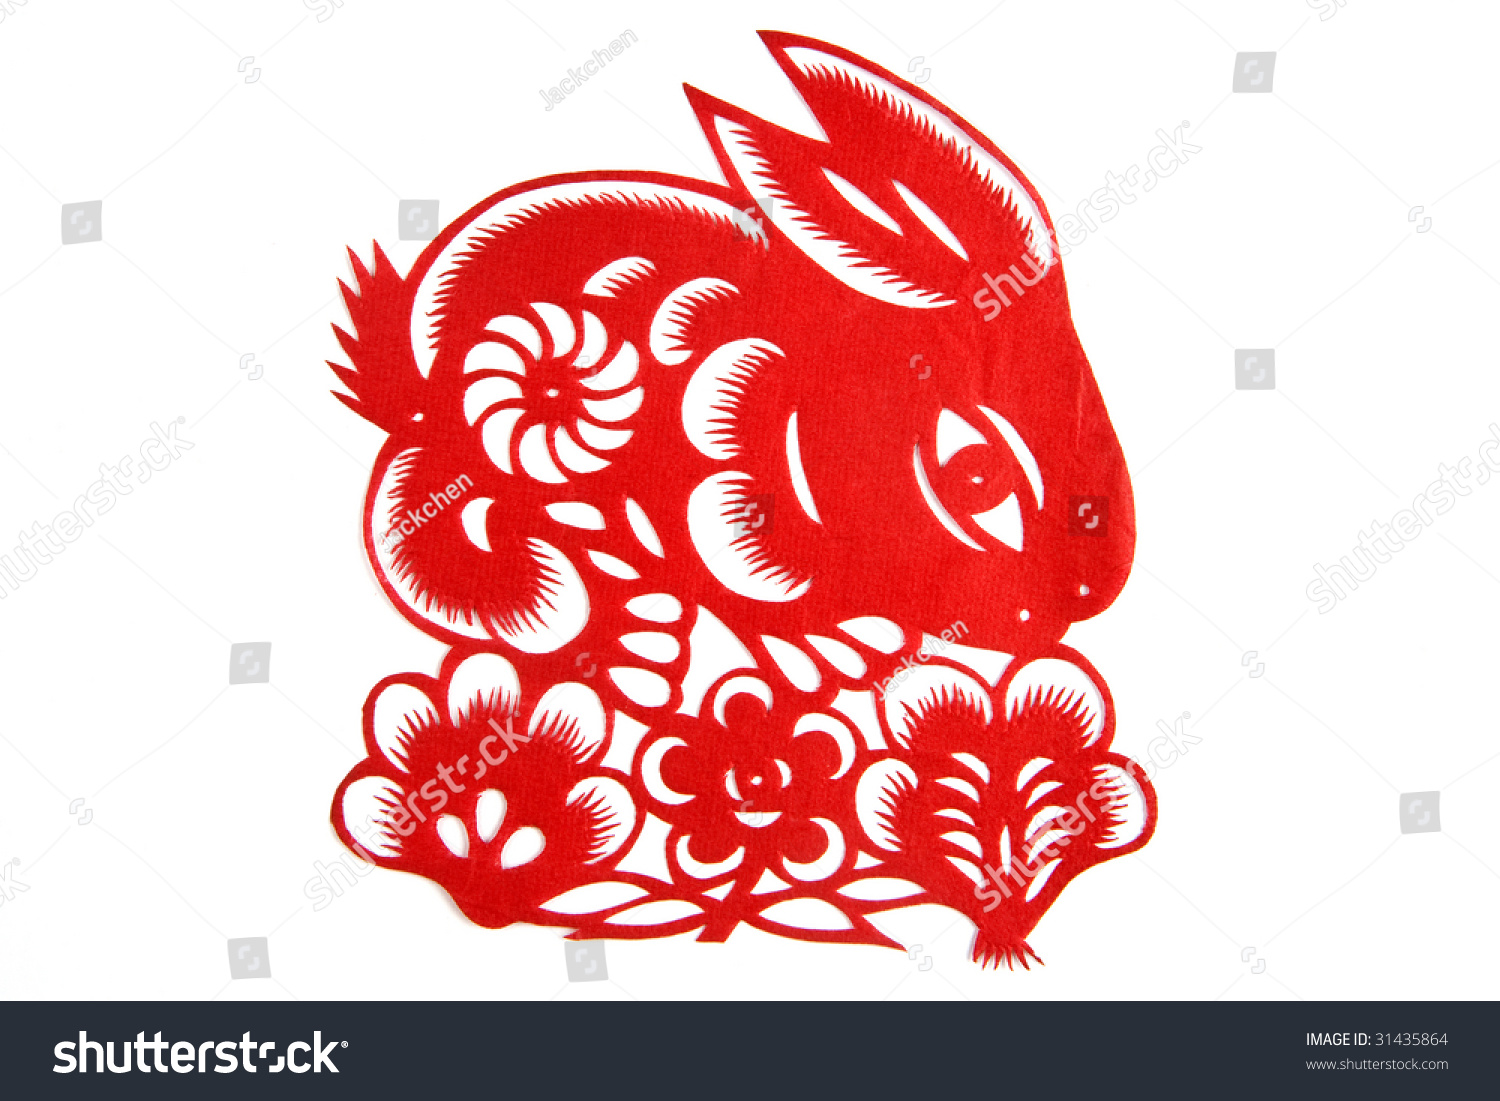 chinese zodiac lunar new year rabbit stock illustration 31435864 shutterstock. Black Bedroom Furniture Sets. Home Design Ideas